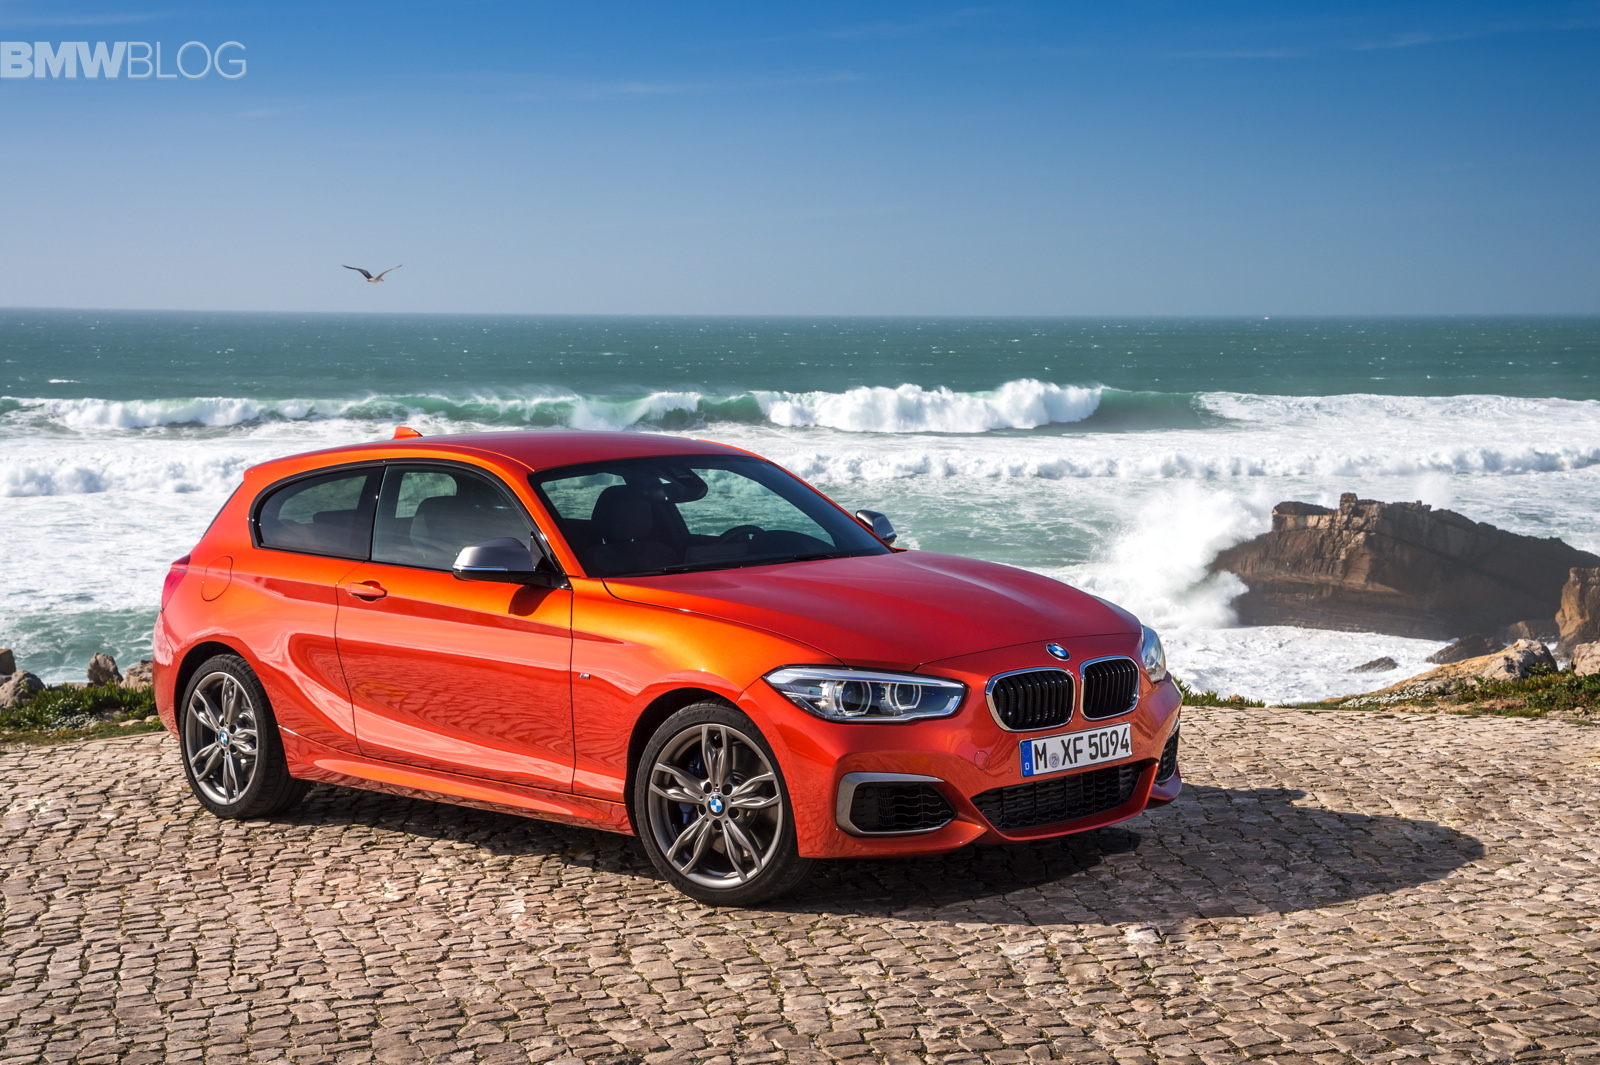 2015 bmw m135i design images 20